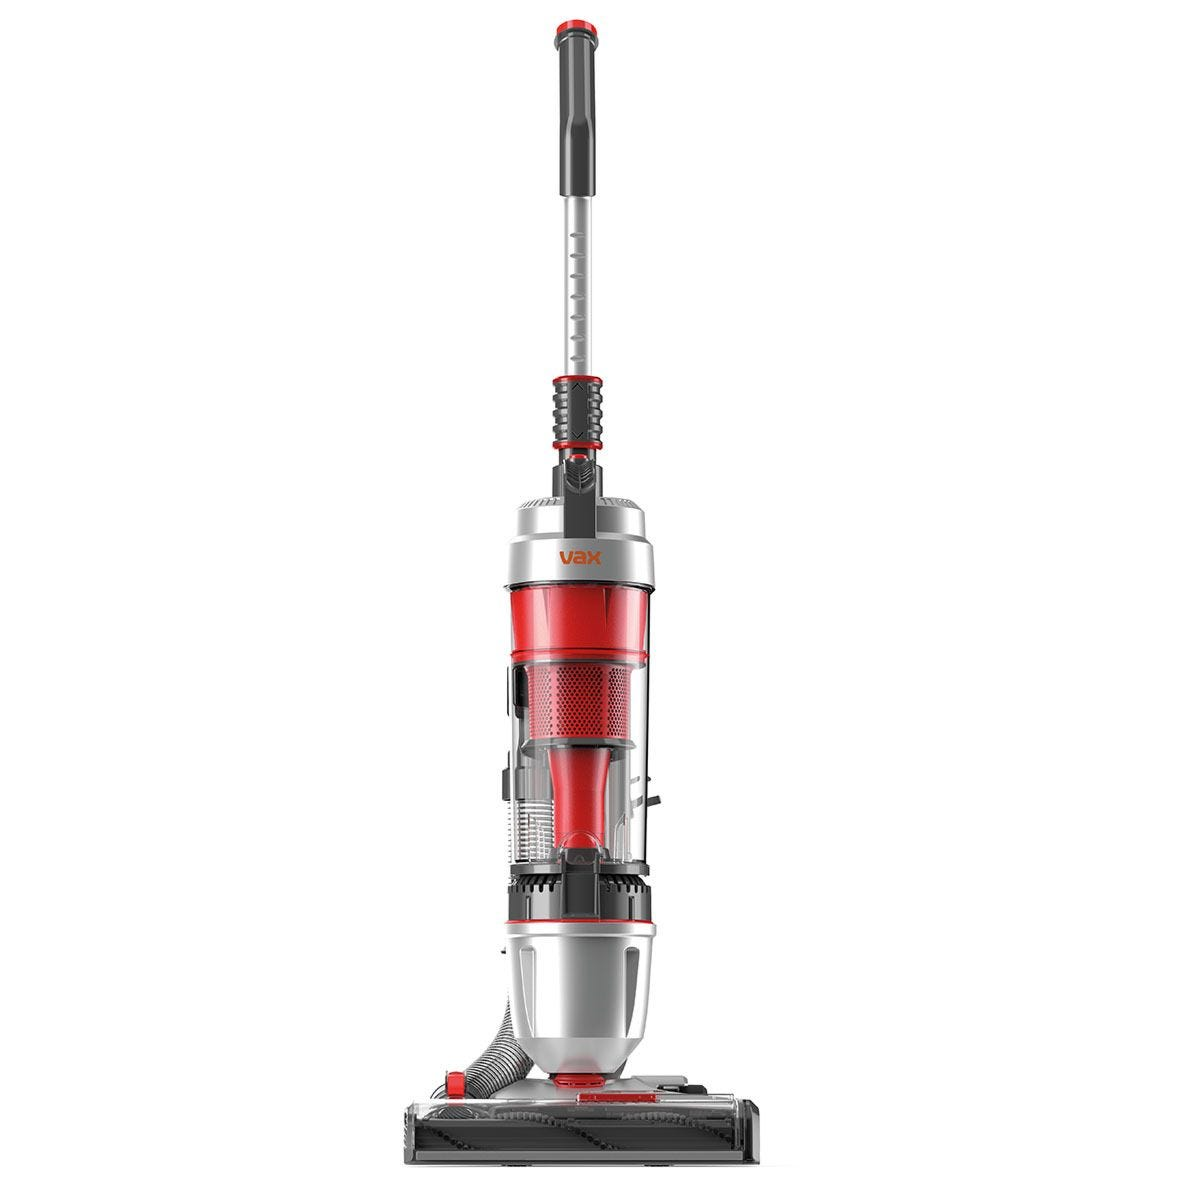 Vax UCUEGEV1 Air Stretch Pro Lightweight Bagless Upright Vacuum Cleaner – Silver & Red